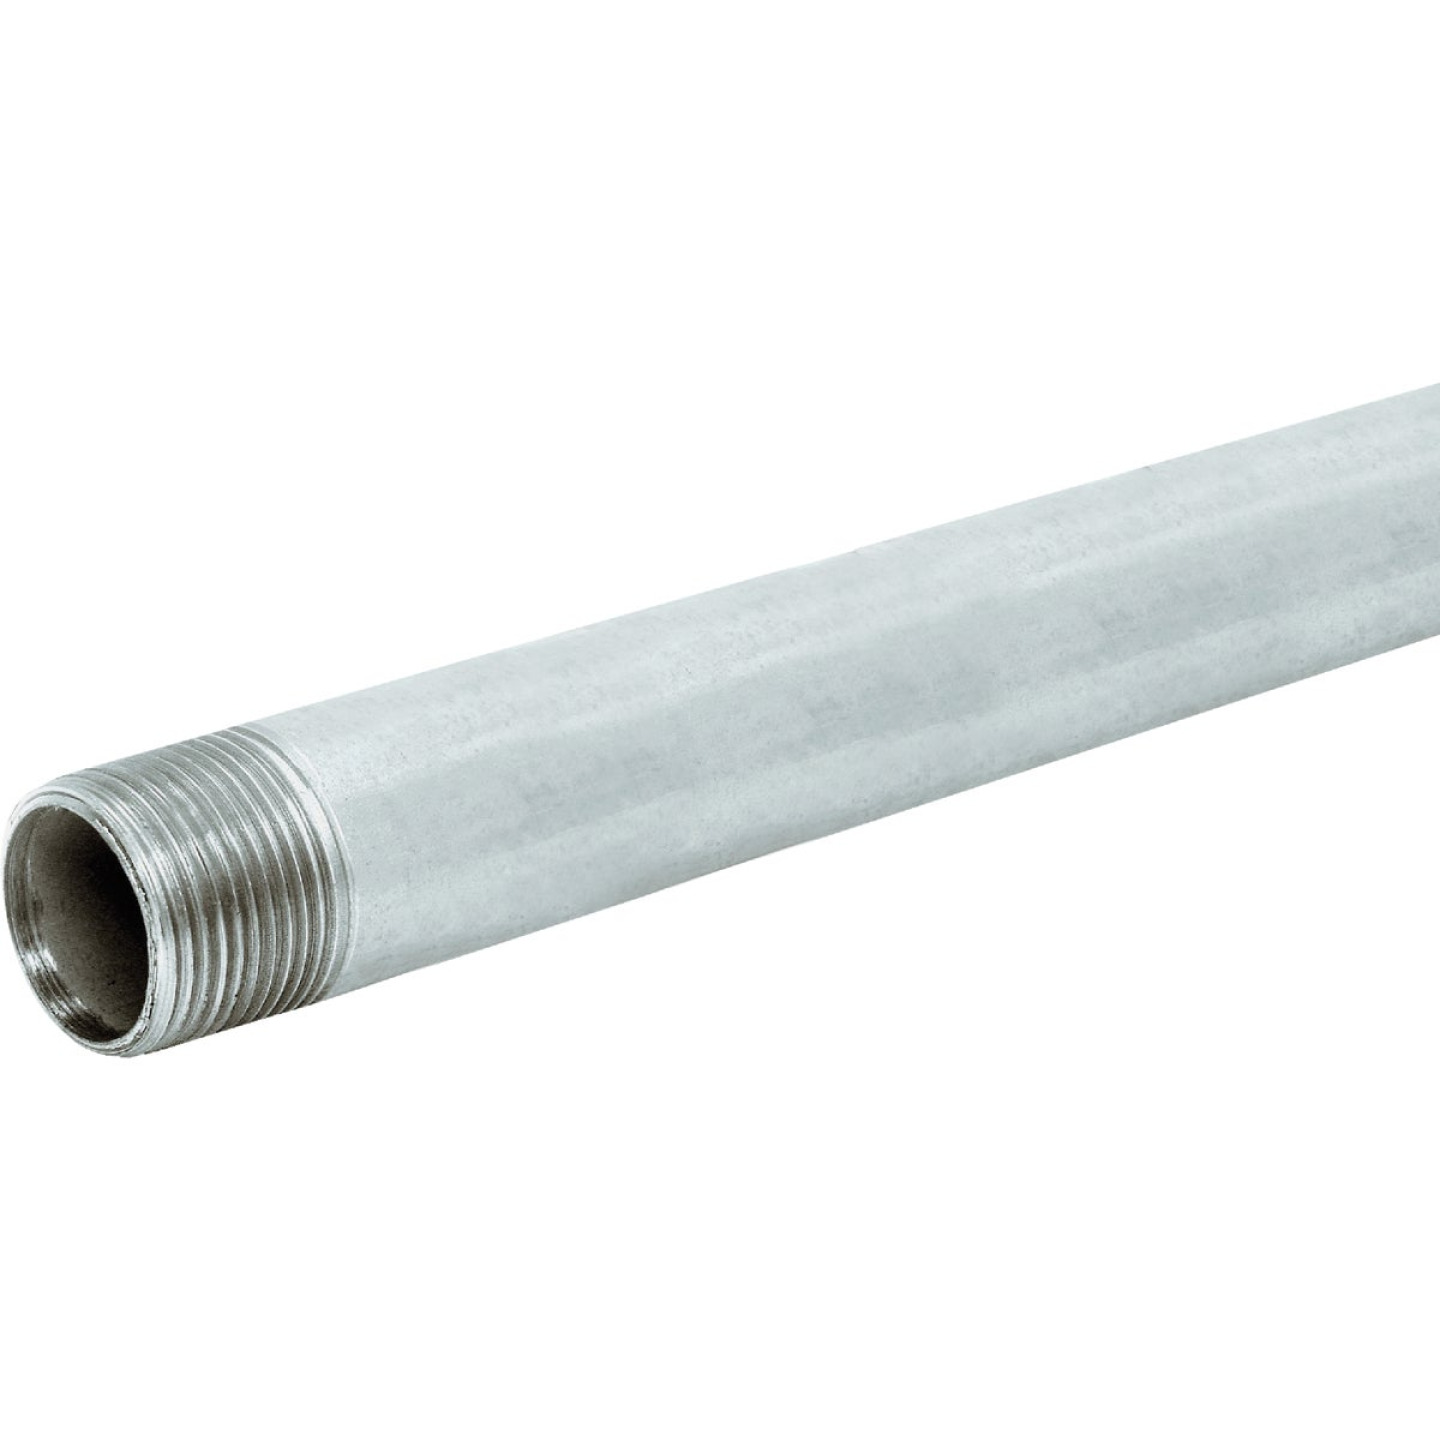 Southland 1/2 In. x 10 Ft. Carbon Steel Theaded Galvanized Pipe Image 1